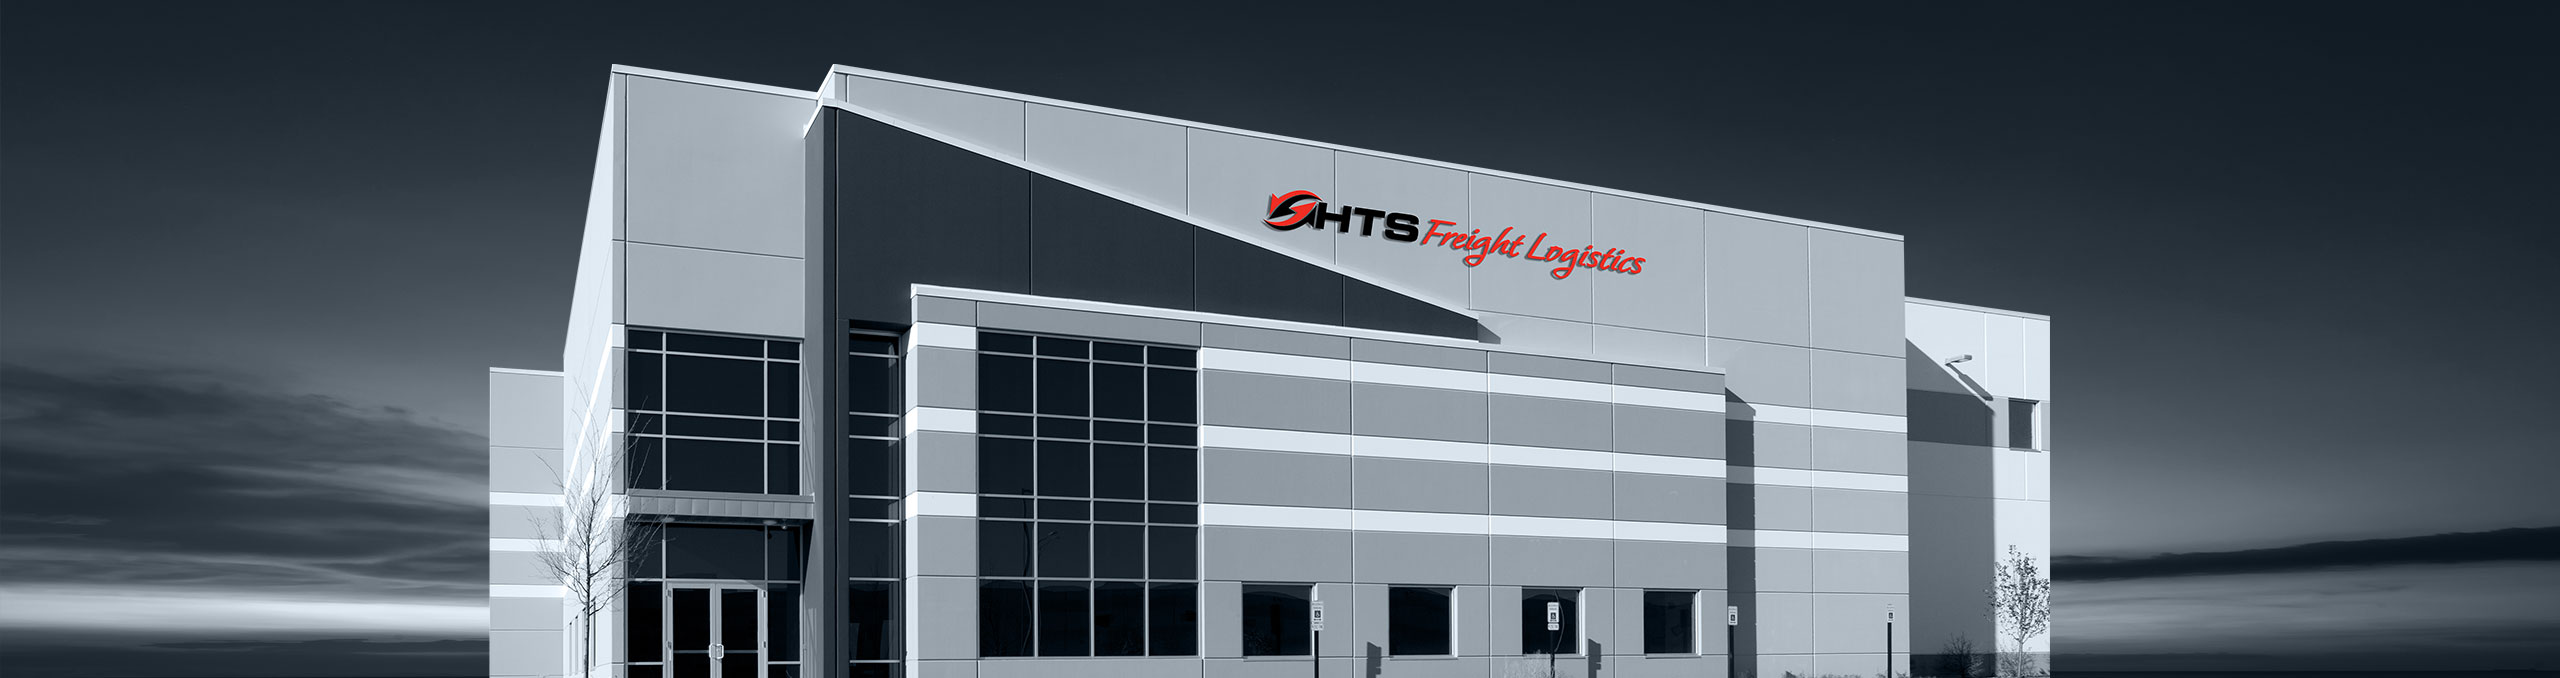 HTS Freight Logistics in Bolton (Toronto), Ontario, Canada.